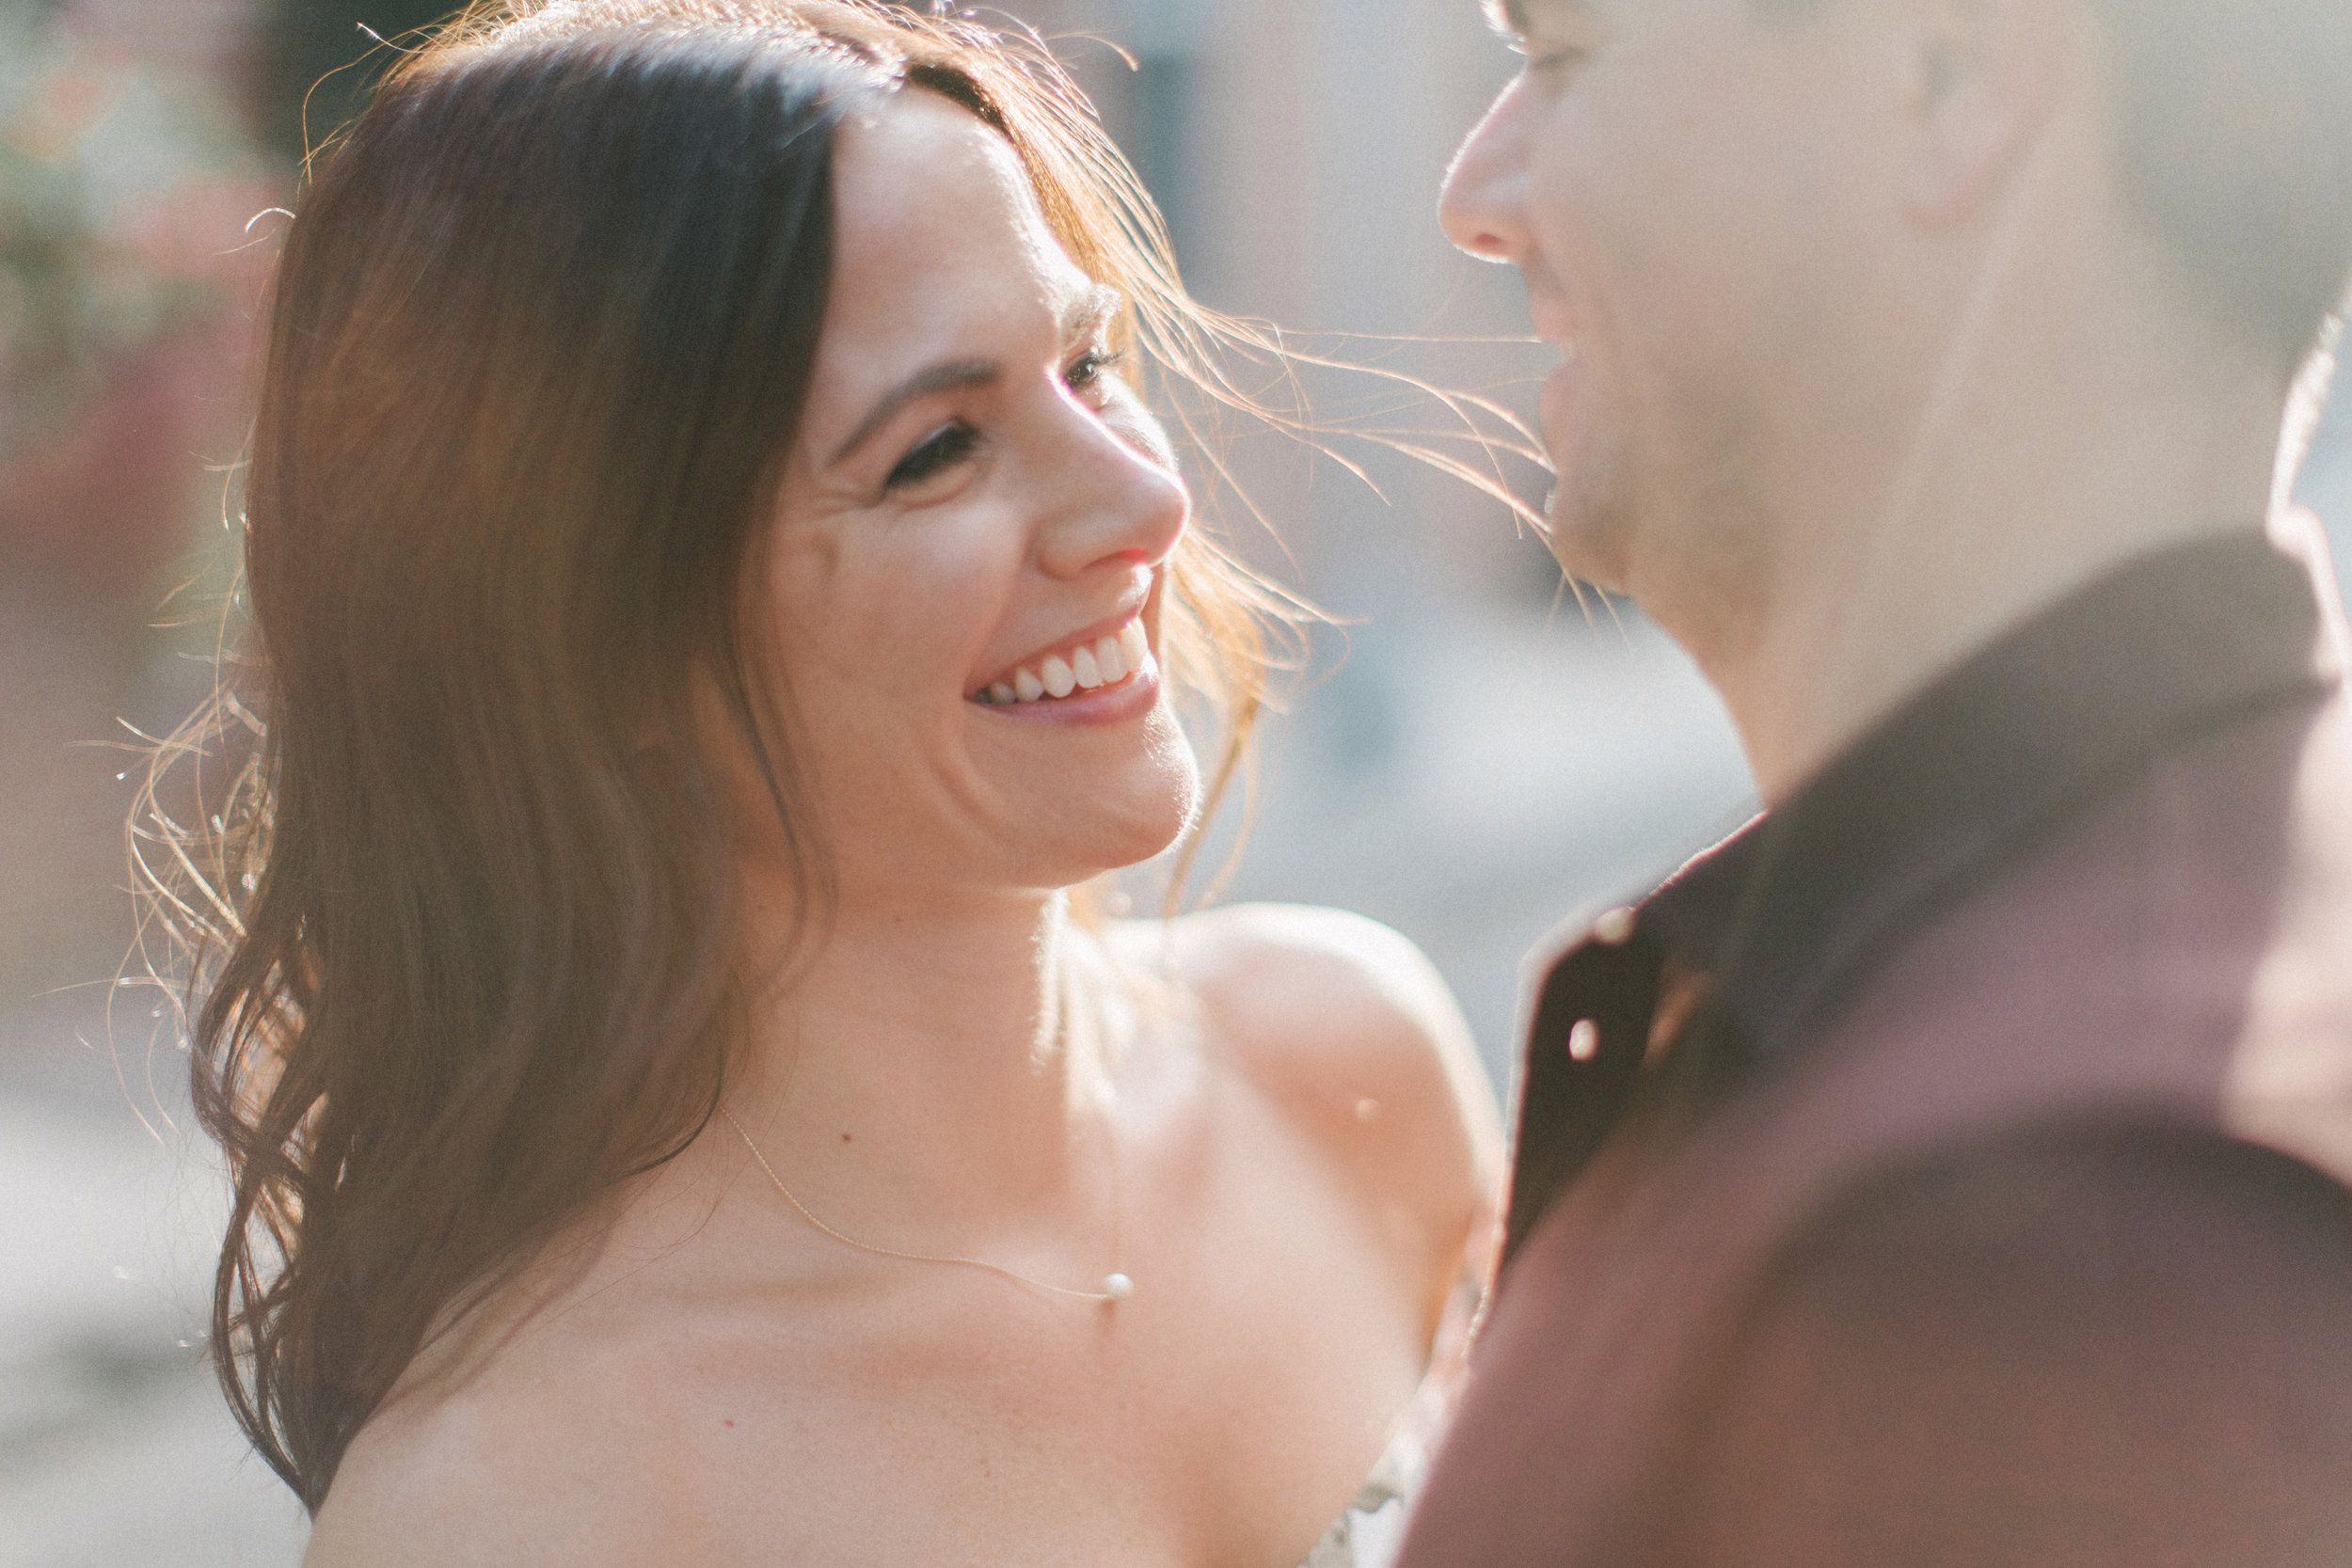 Erin-And-Mike-Brooklyn-Engagement-Shoot-25.jpg